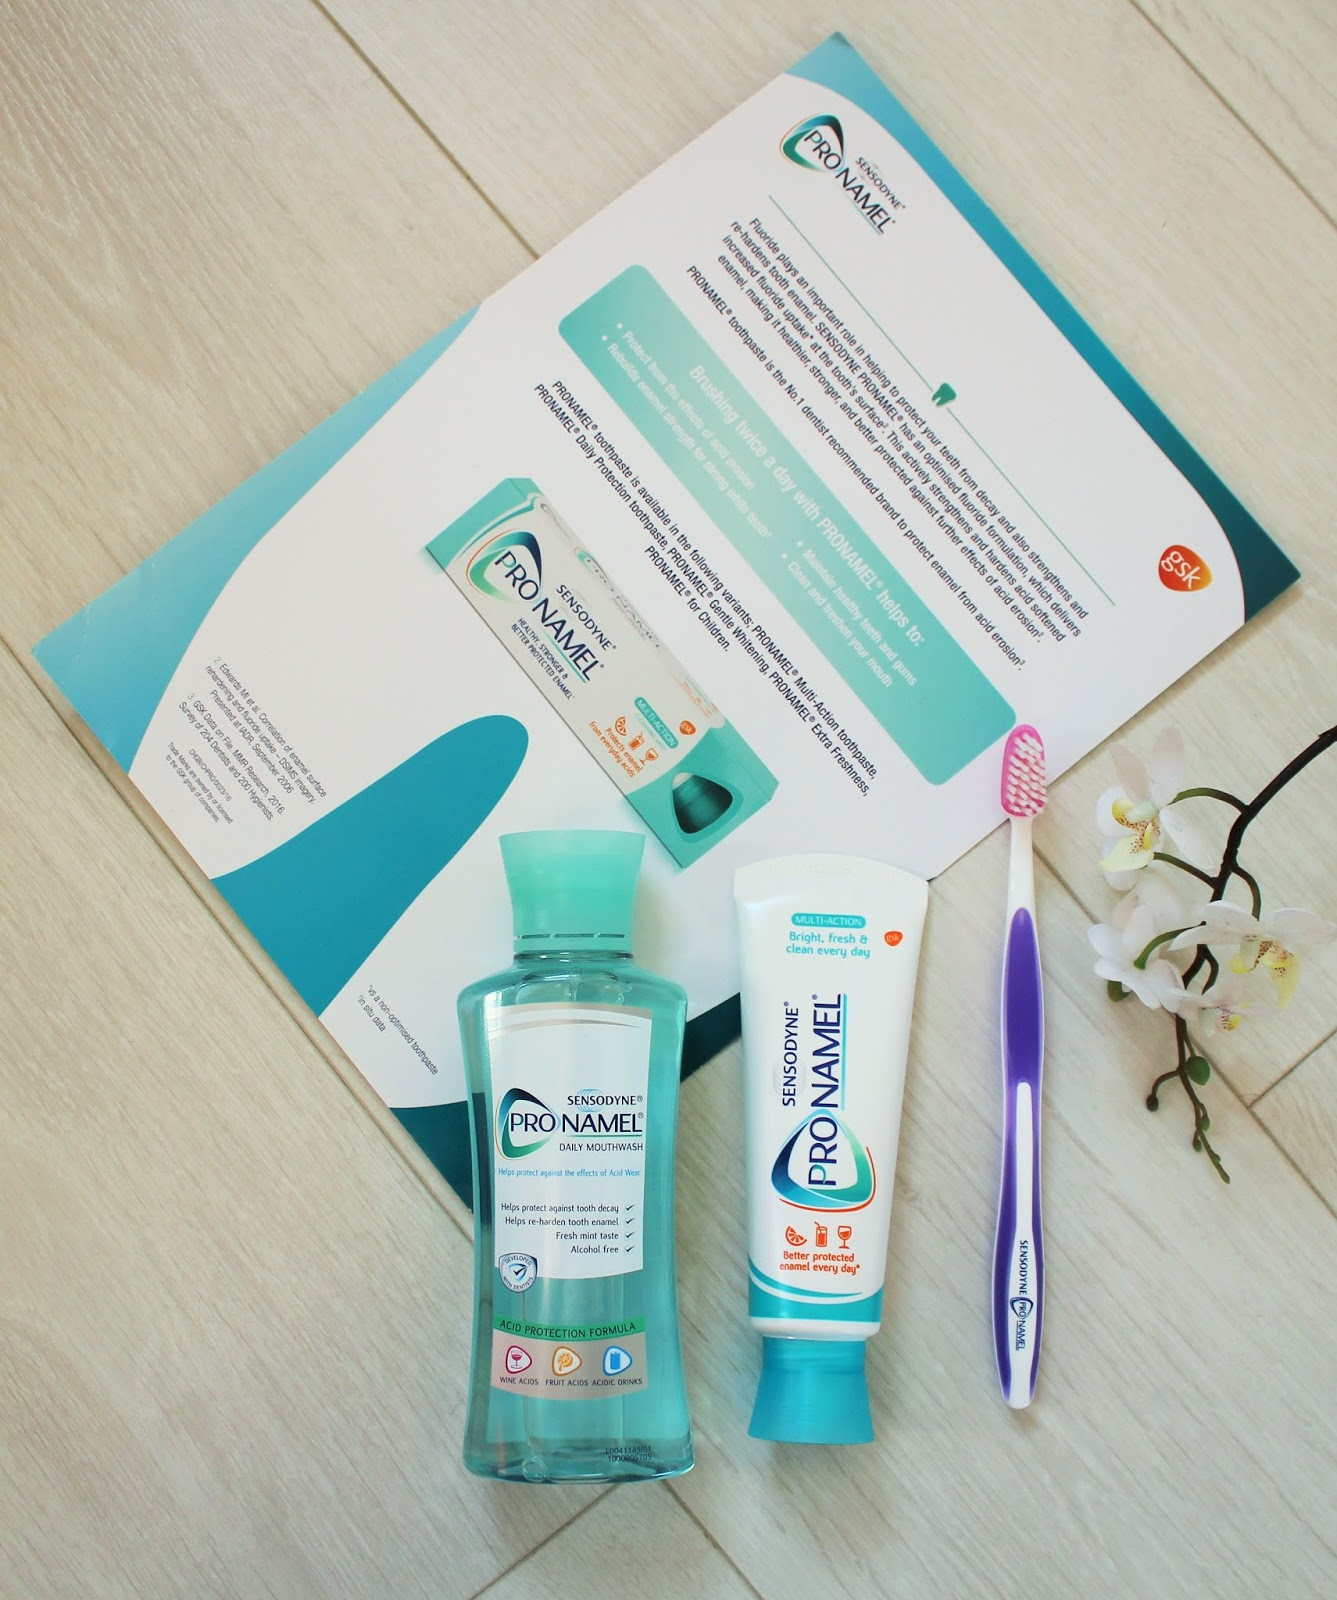 Protect your smile with Sensodyne Pronamel - 1